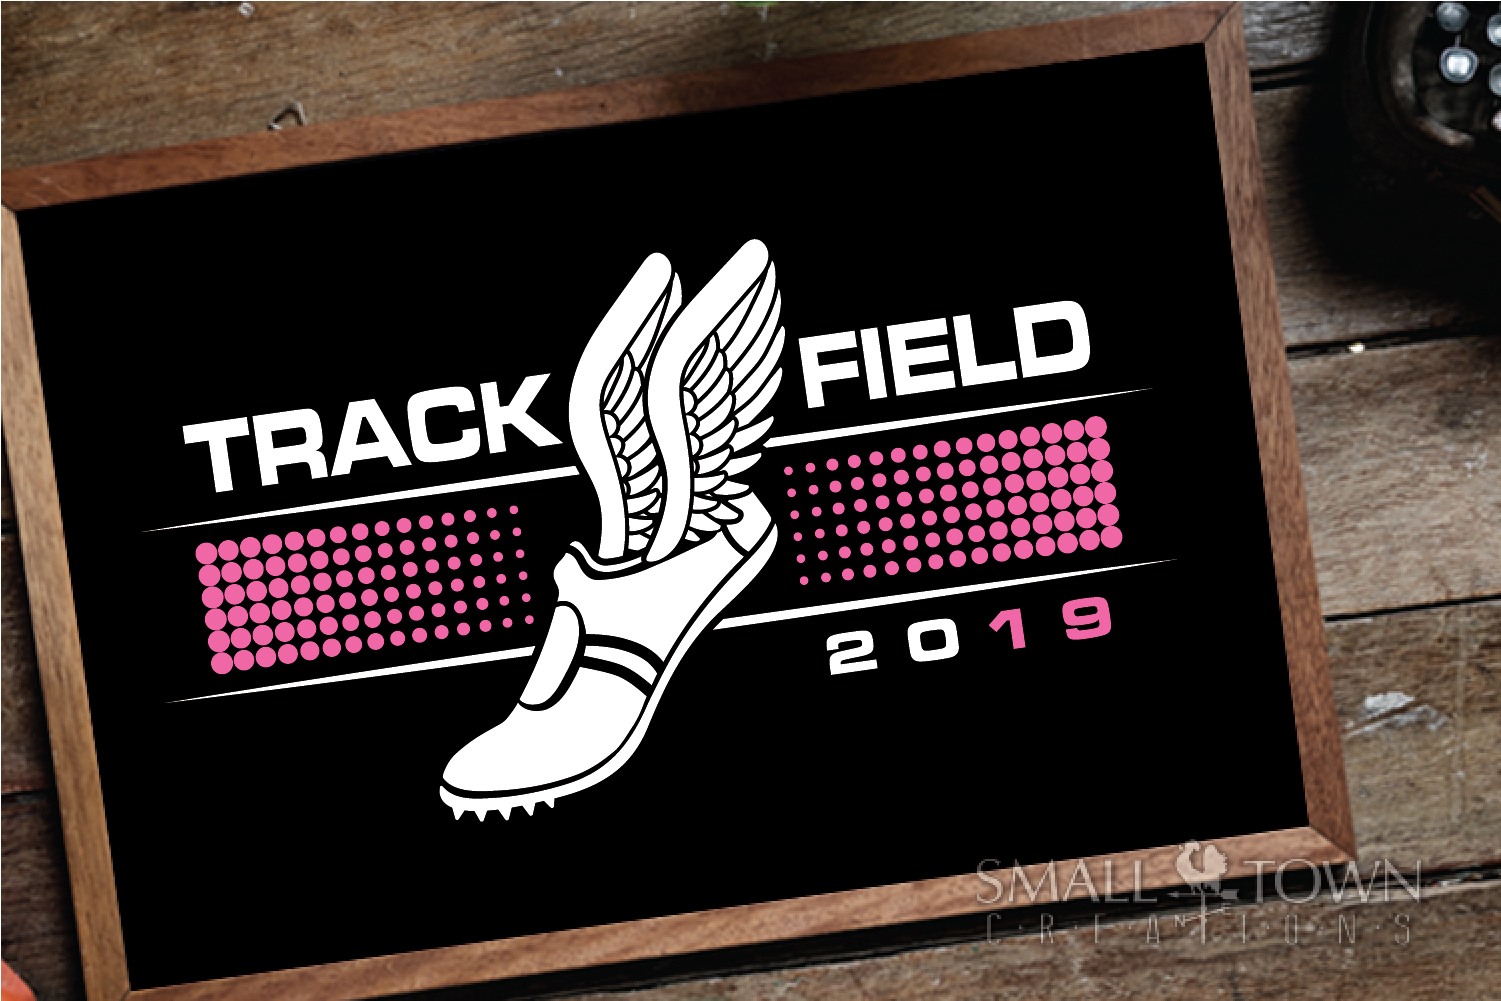 Track and Field, Team sport, Track logo, PRINT, CUT, DESIGN example image 3